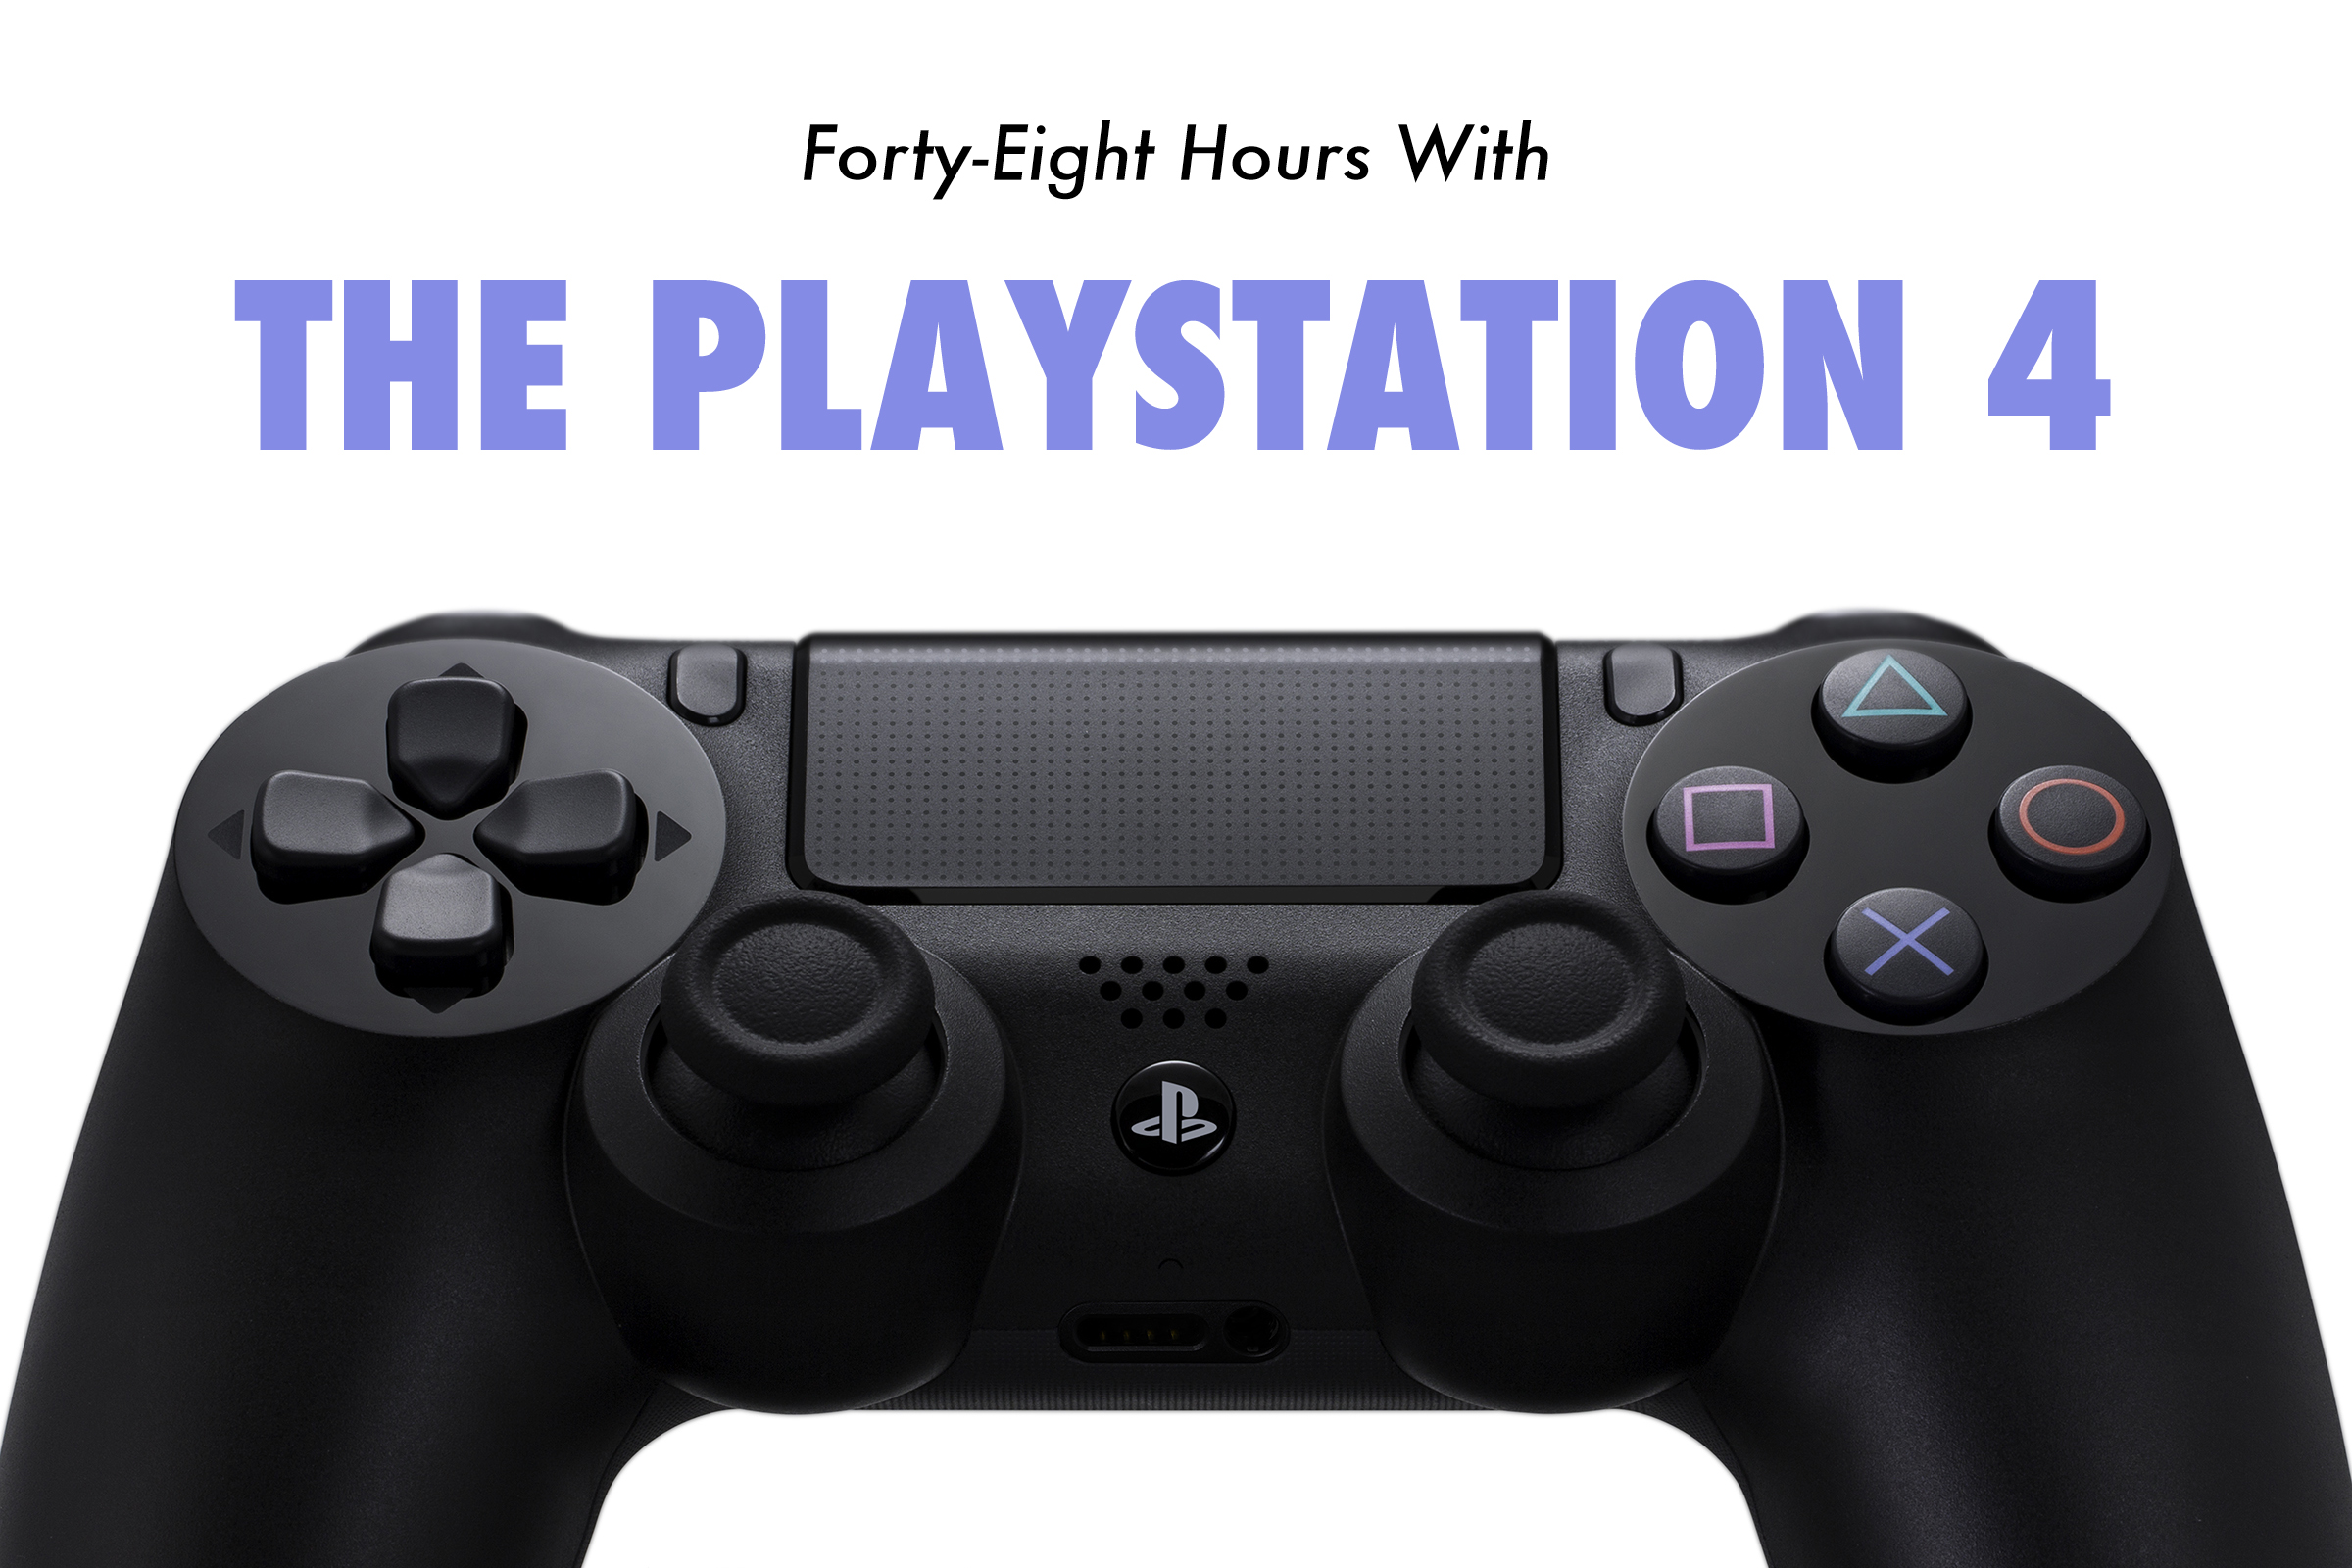 Forty-Eight Hours With The Playstation 4